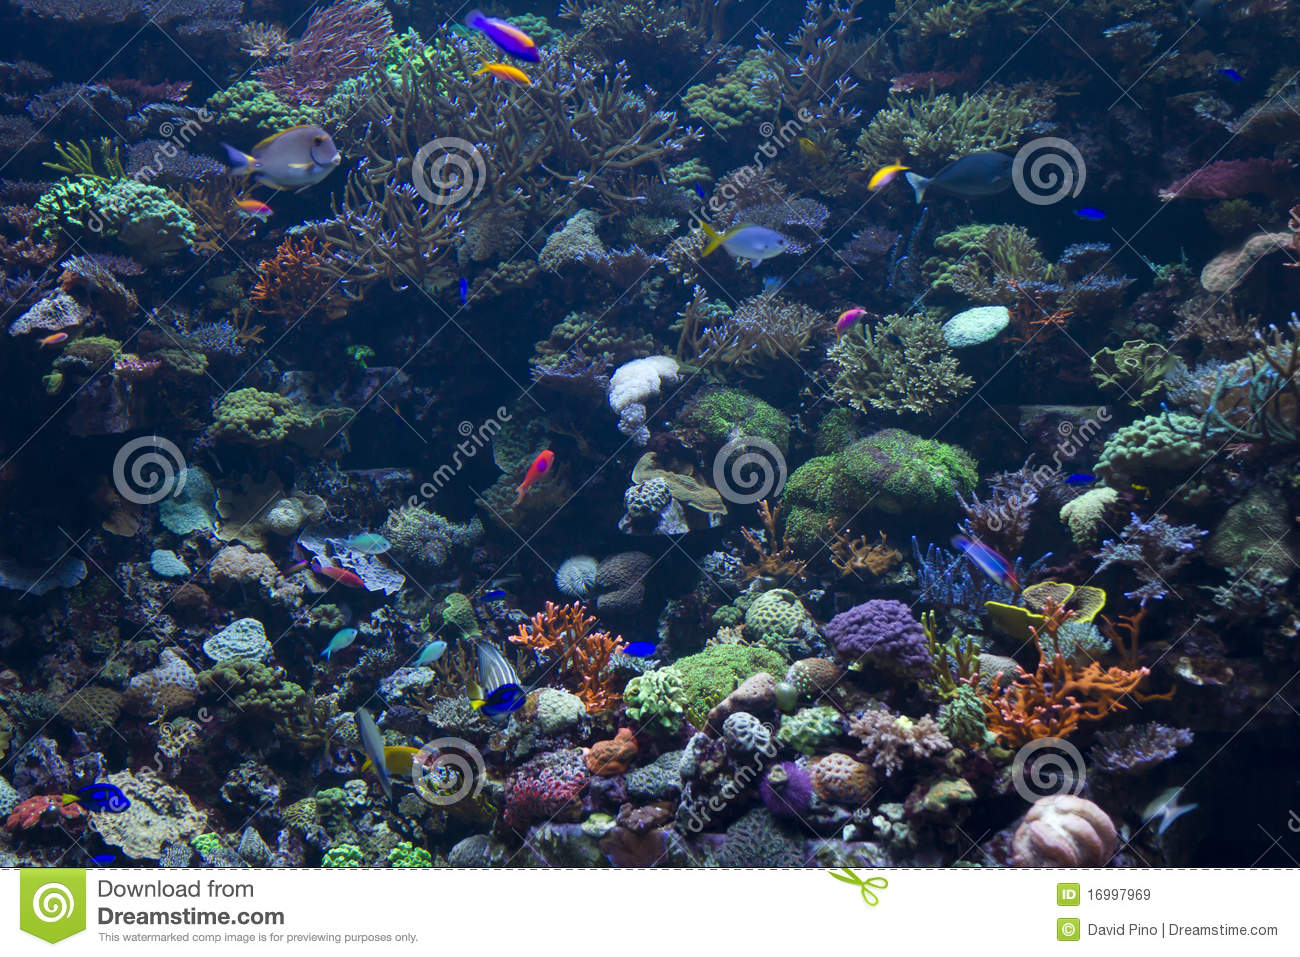 Royalty Free Stock Images Fish Under Sea Image16997969